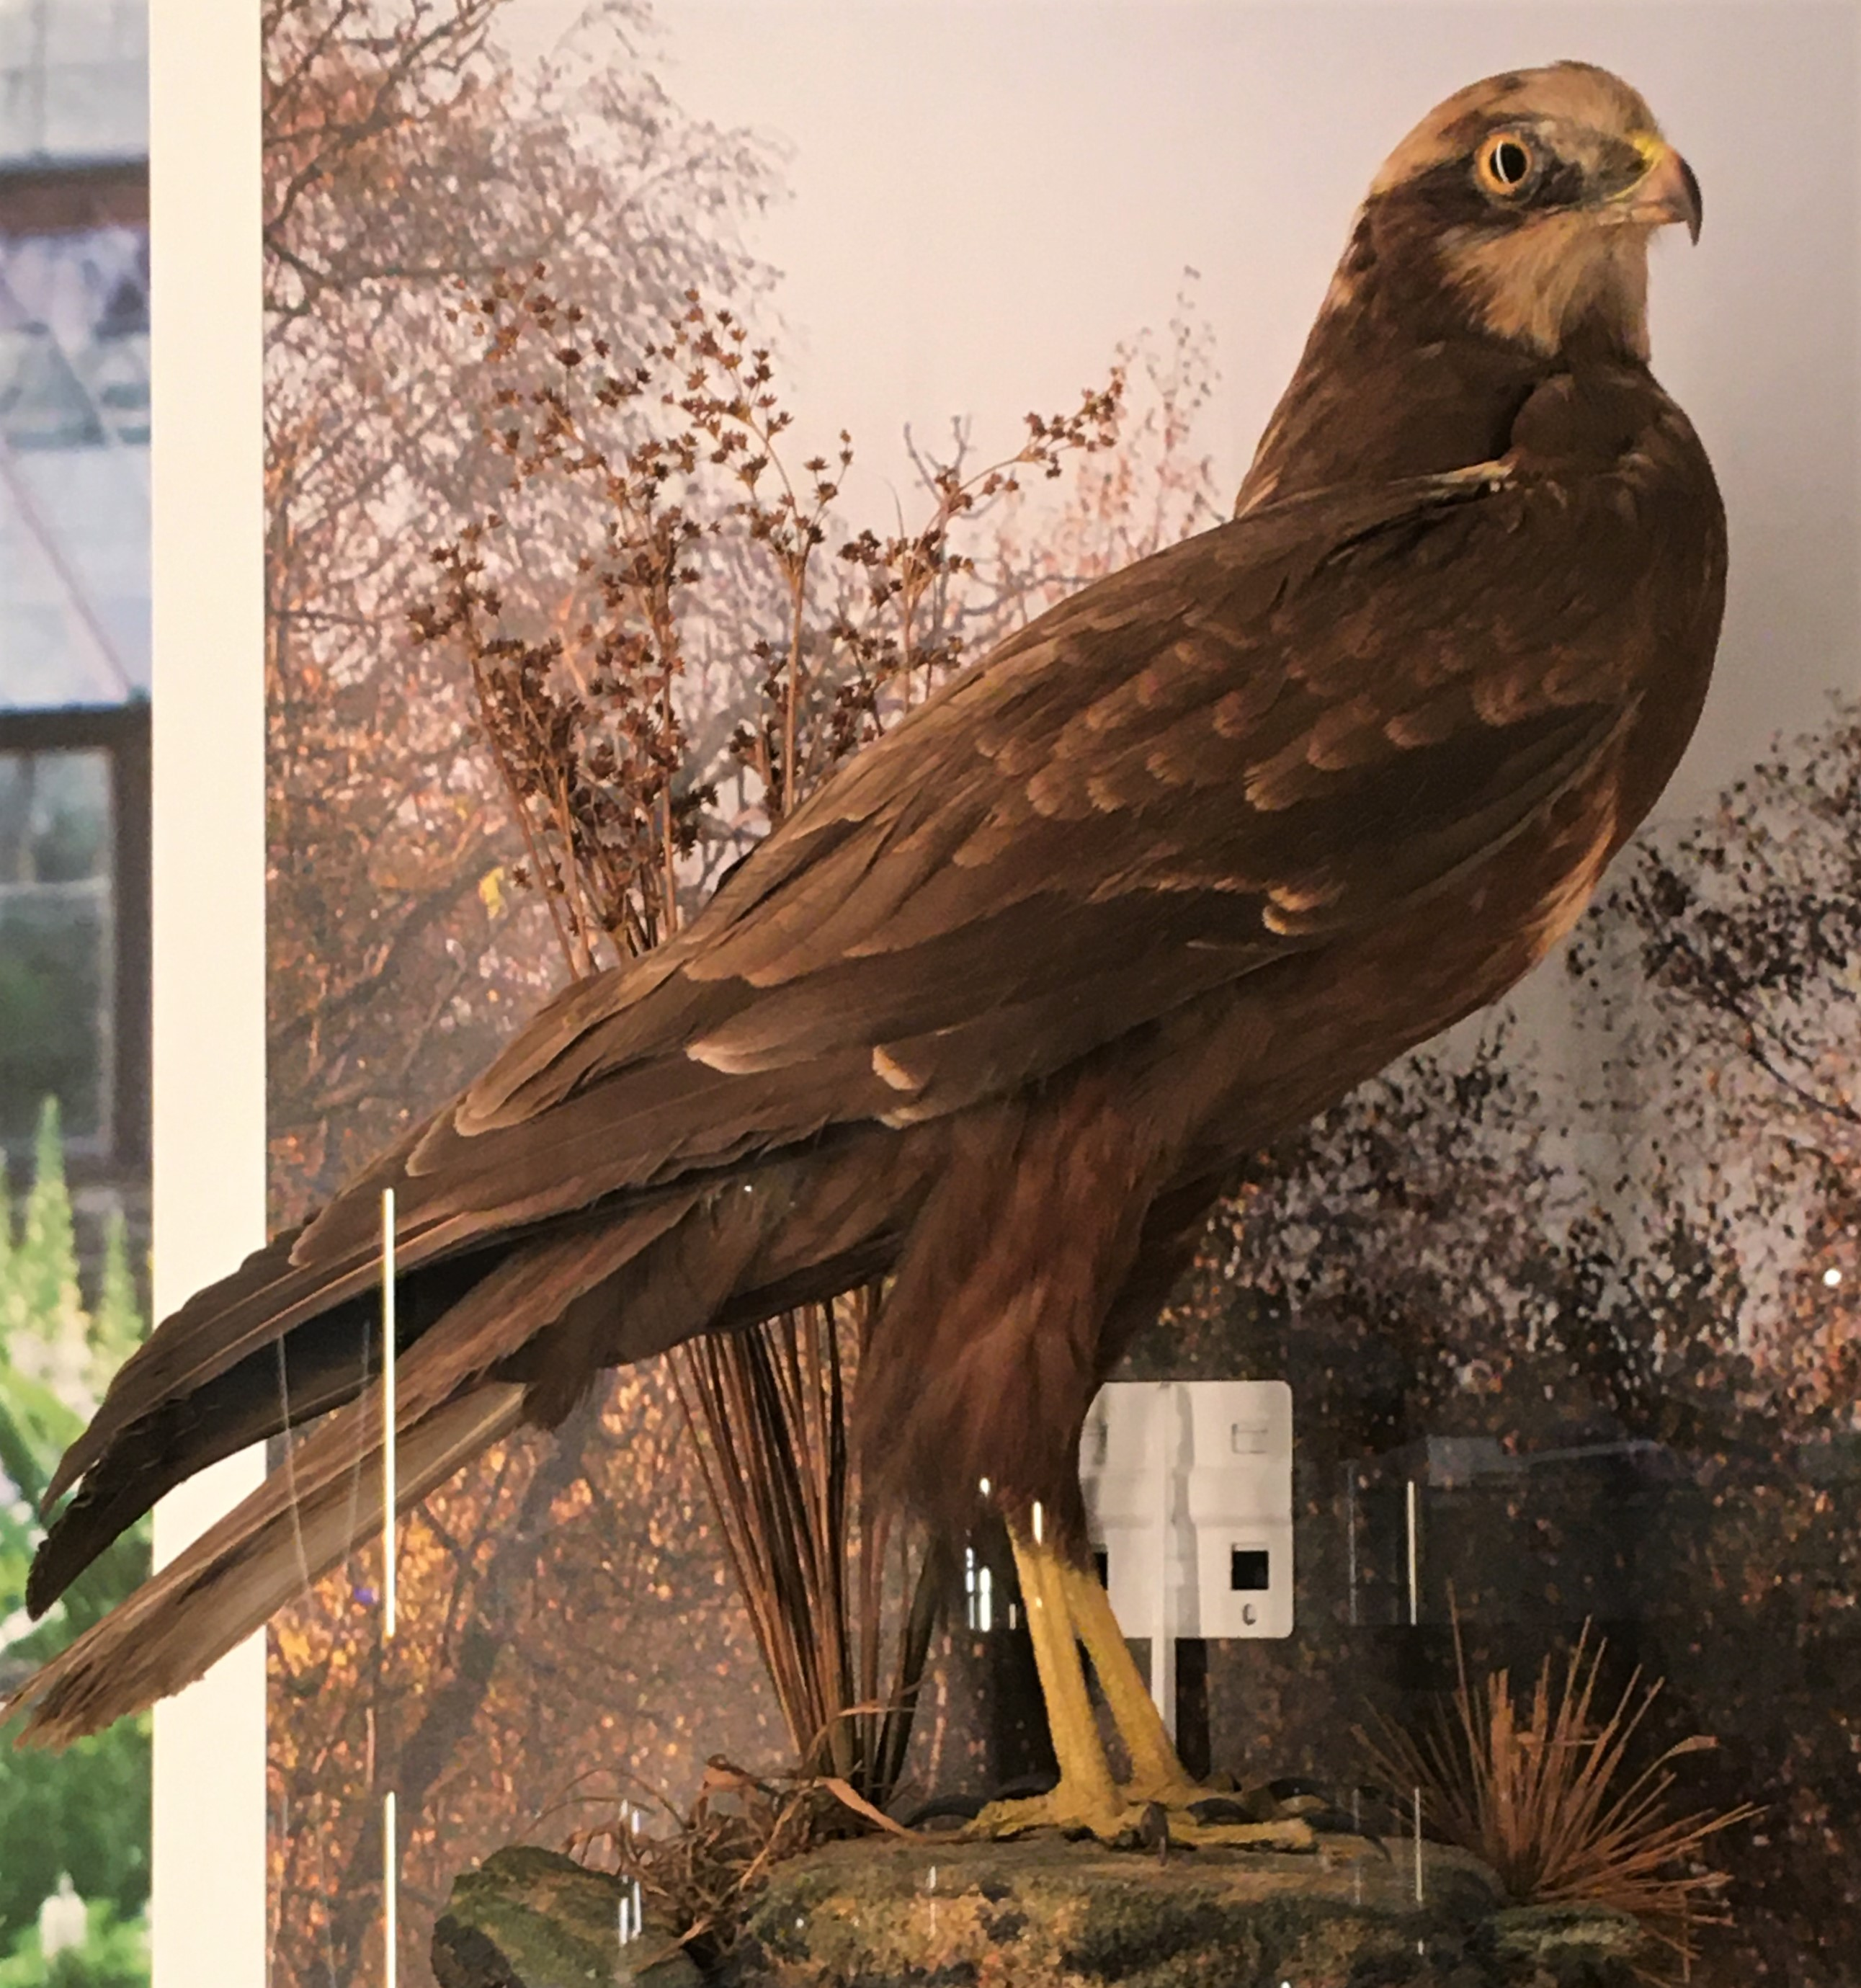 Photograph of a specimen of a marsh harrier at the Musuem of Zoology